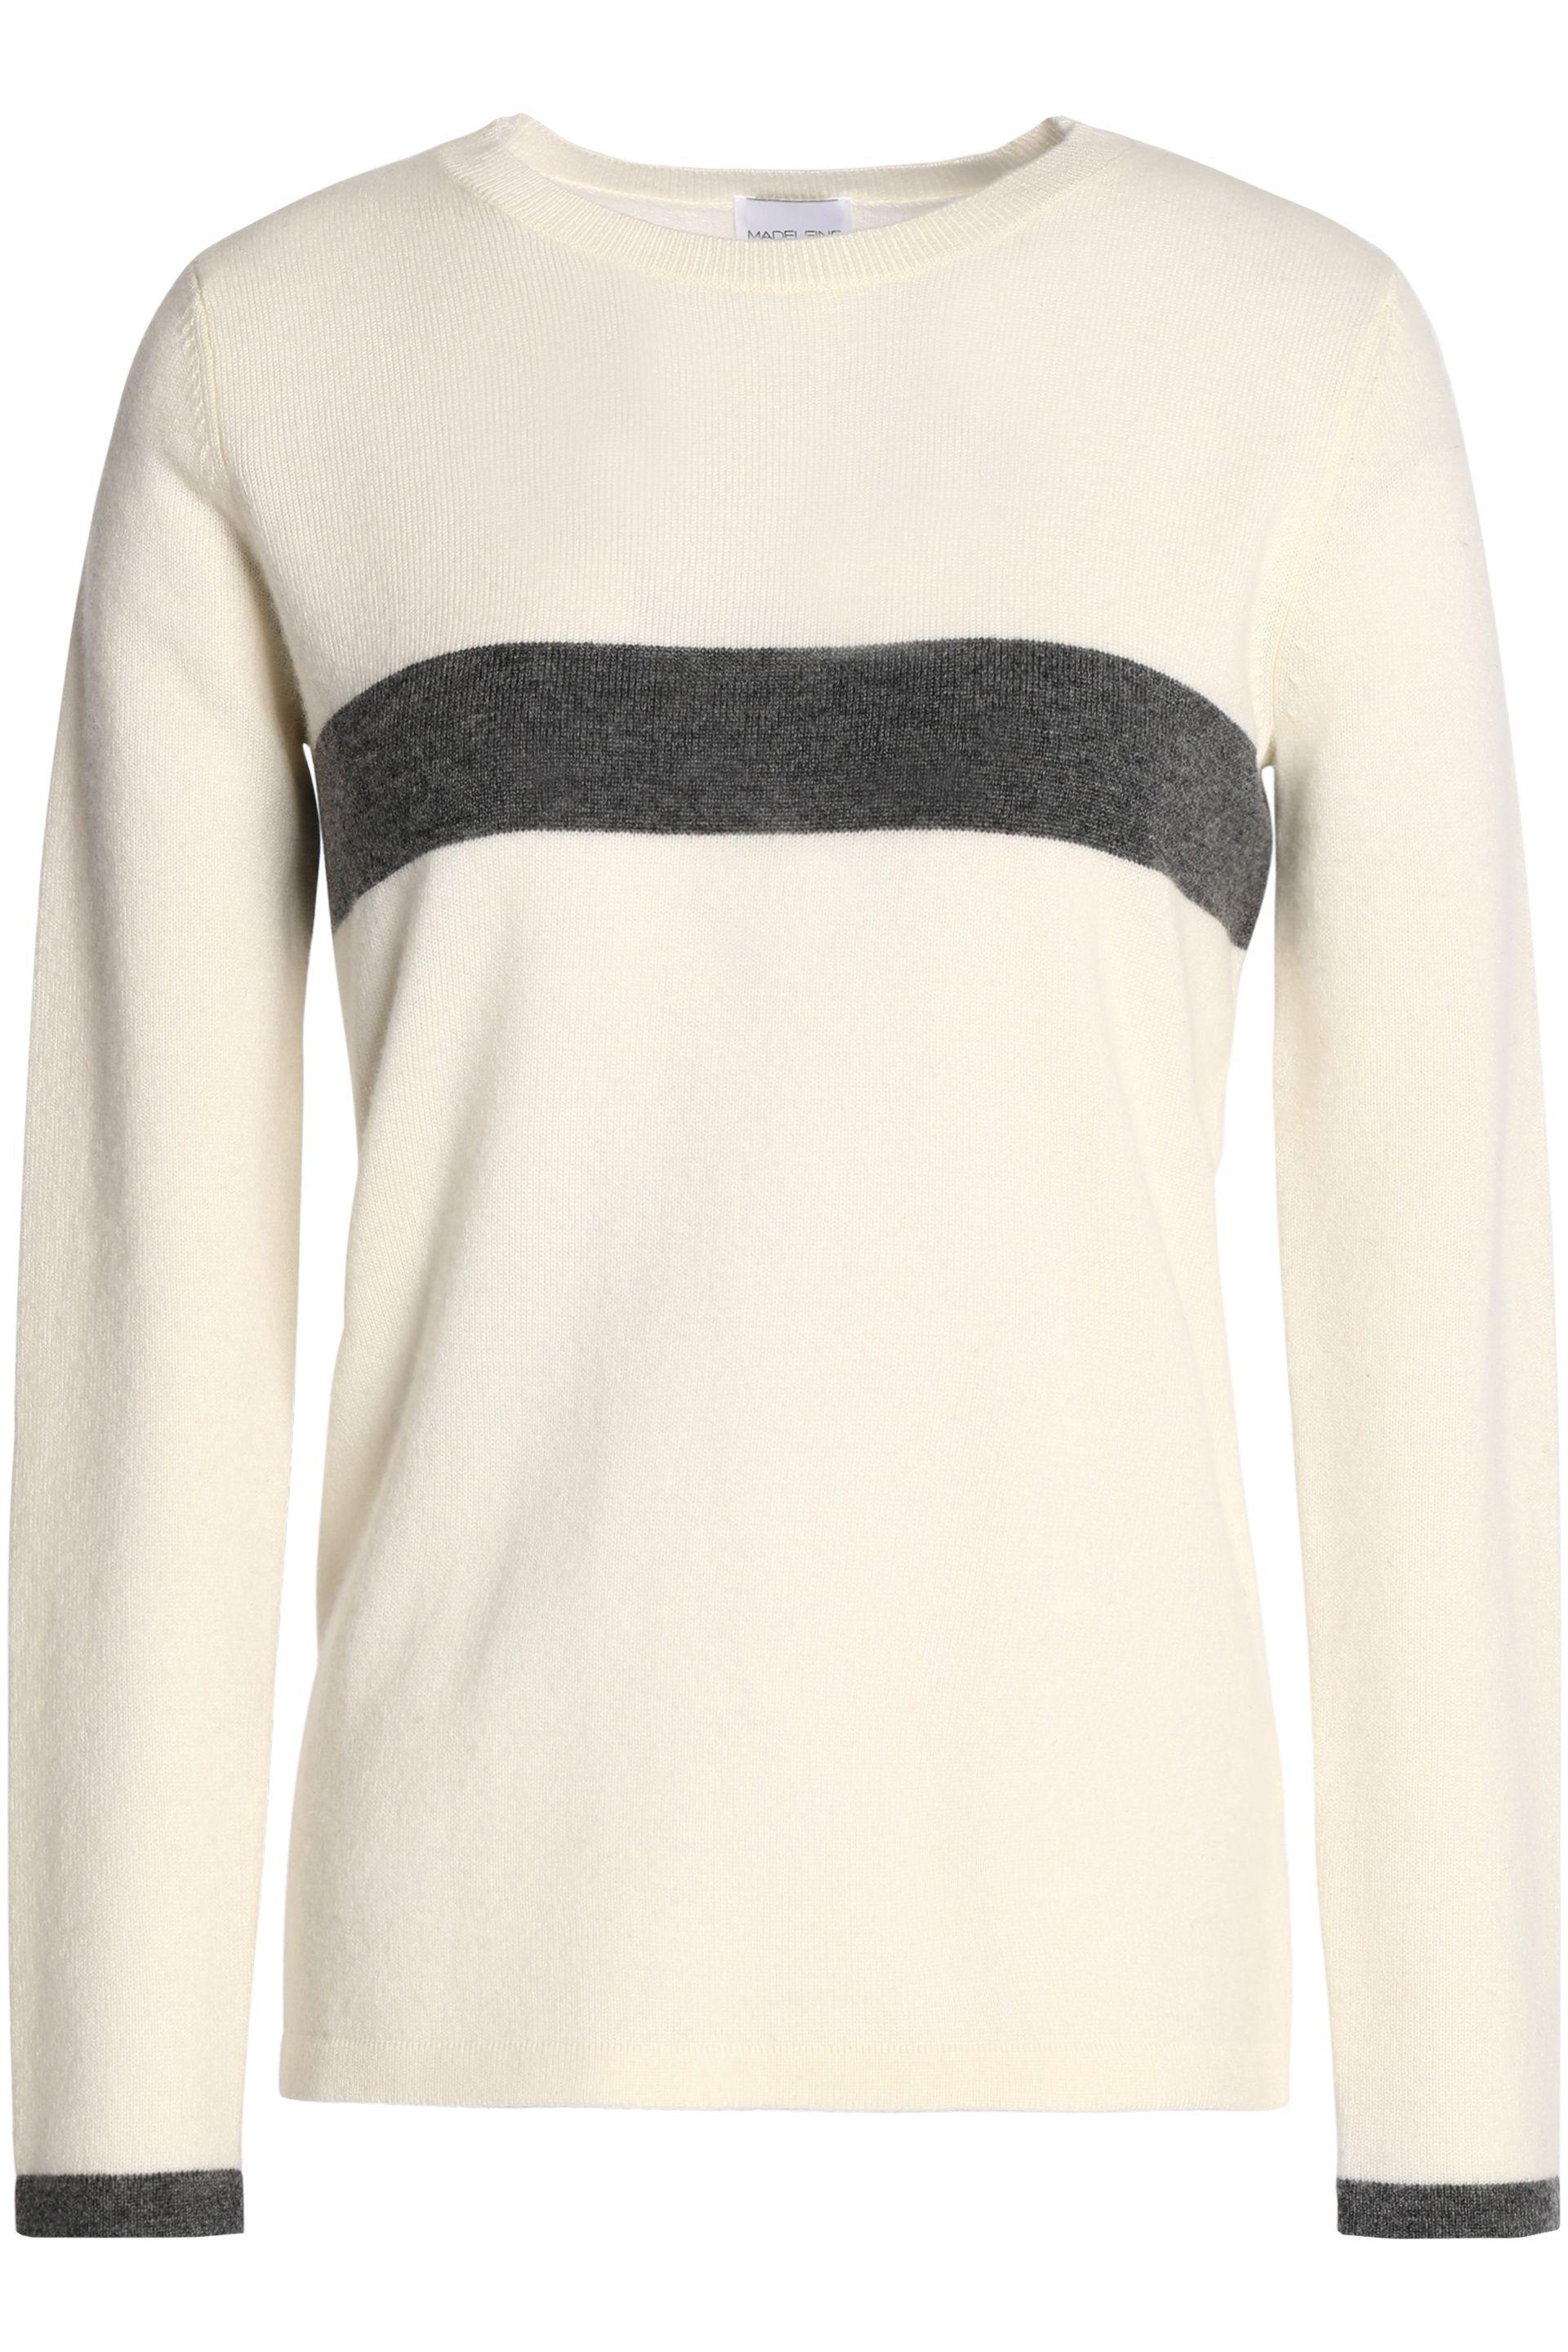 Madeleine Thompson Woman Mélange Wool And Cashmere-blend Peplum Top Cream Size XL Madeleine Thompson Shop For Online Discount Real Cool Shopping Cheap Sale Newest wR2g90Gqna